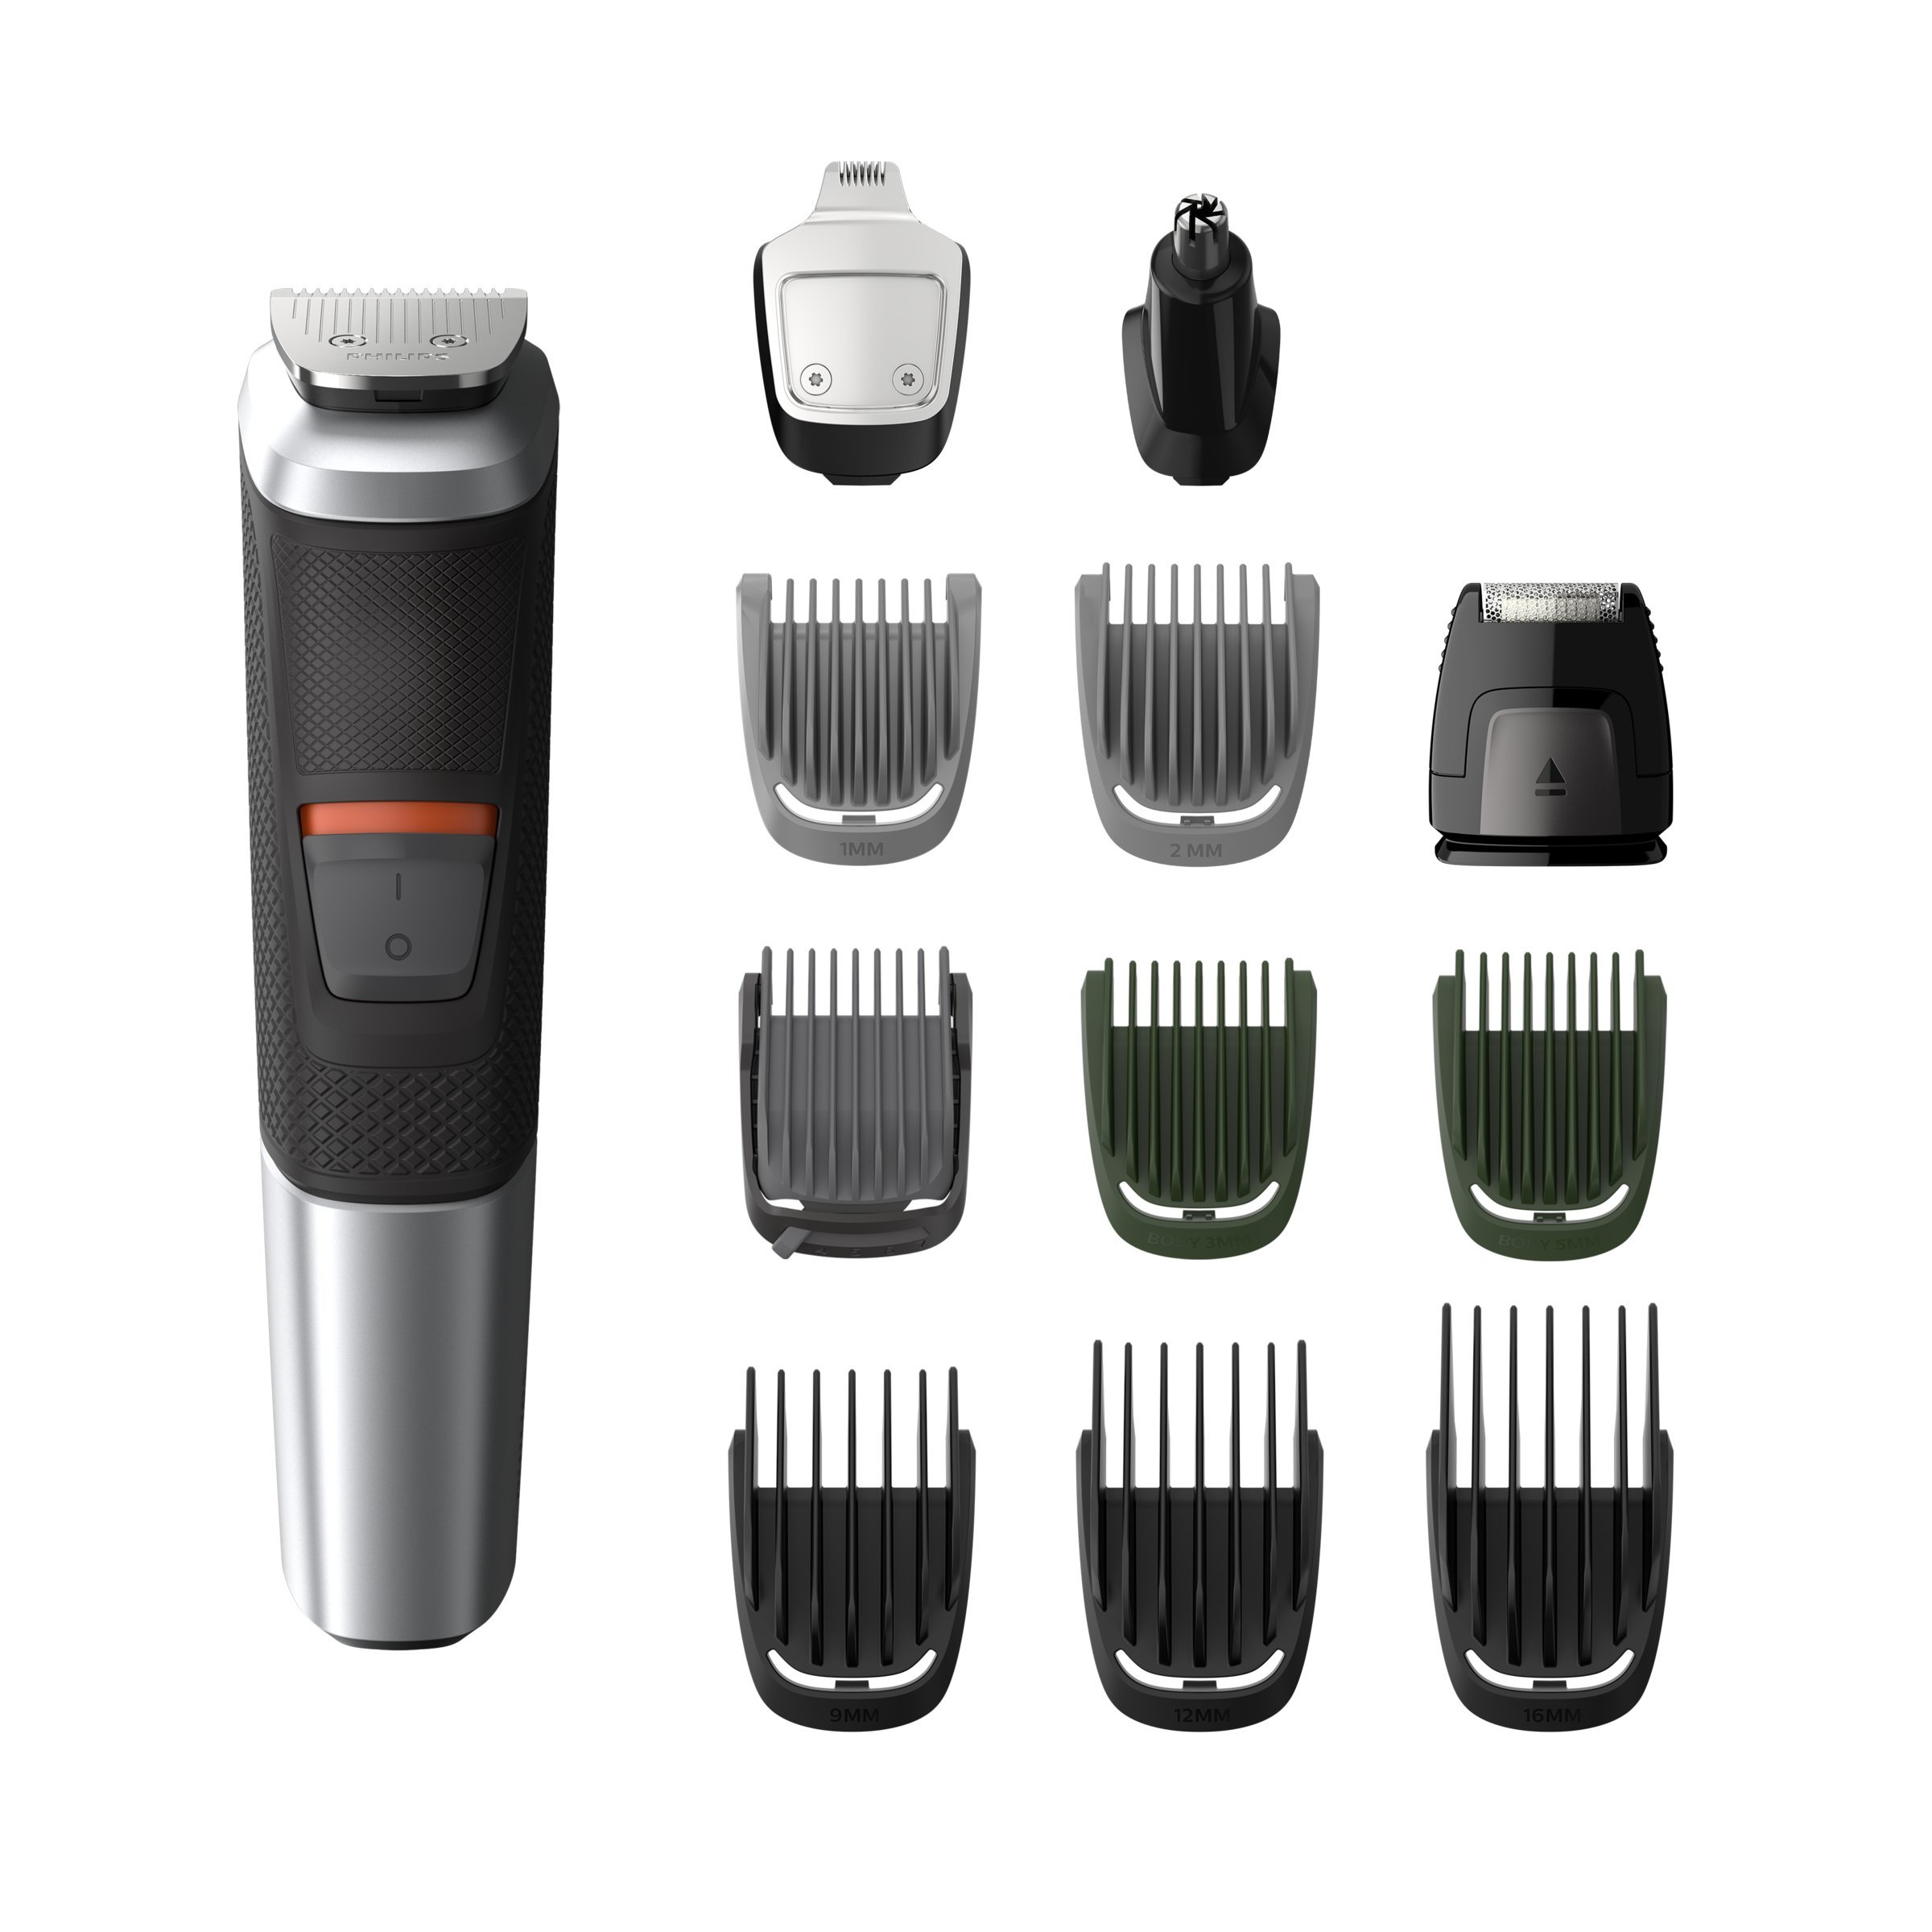 Philips MG5740/15 - Multigroom - Tondeuse Multi-styles Series 5000 12-en-1 product image